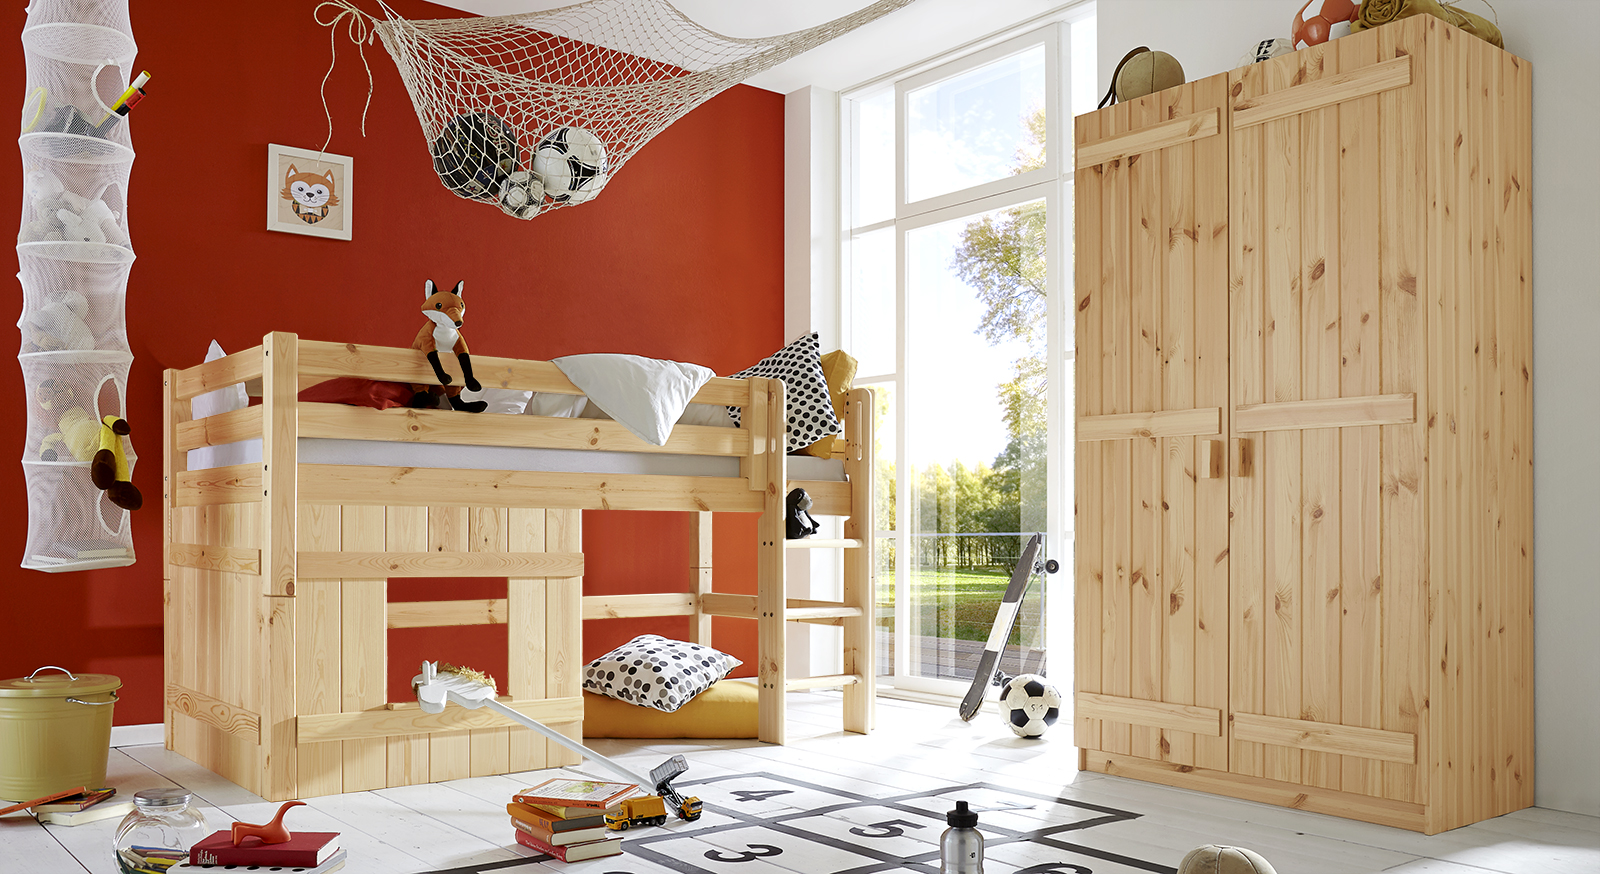 Komplett kinderzimmer aus kiefer massiv kids paradise for Kinderzimmer mit 2 betten